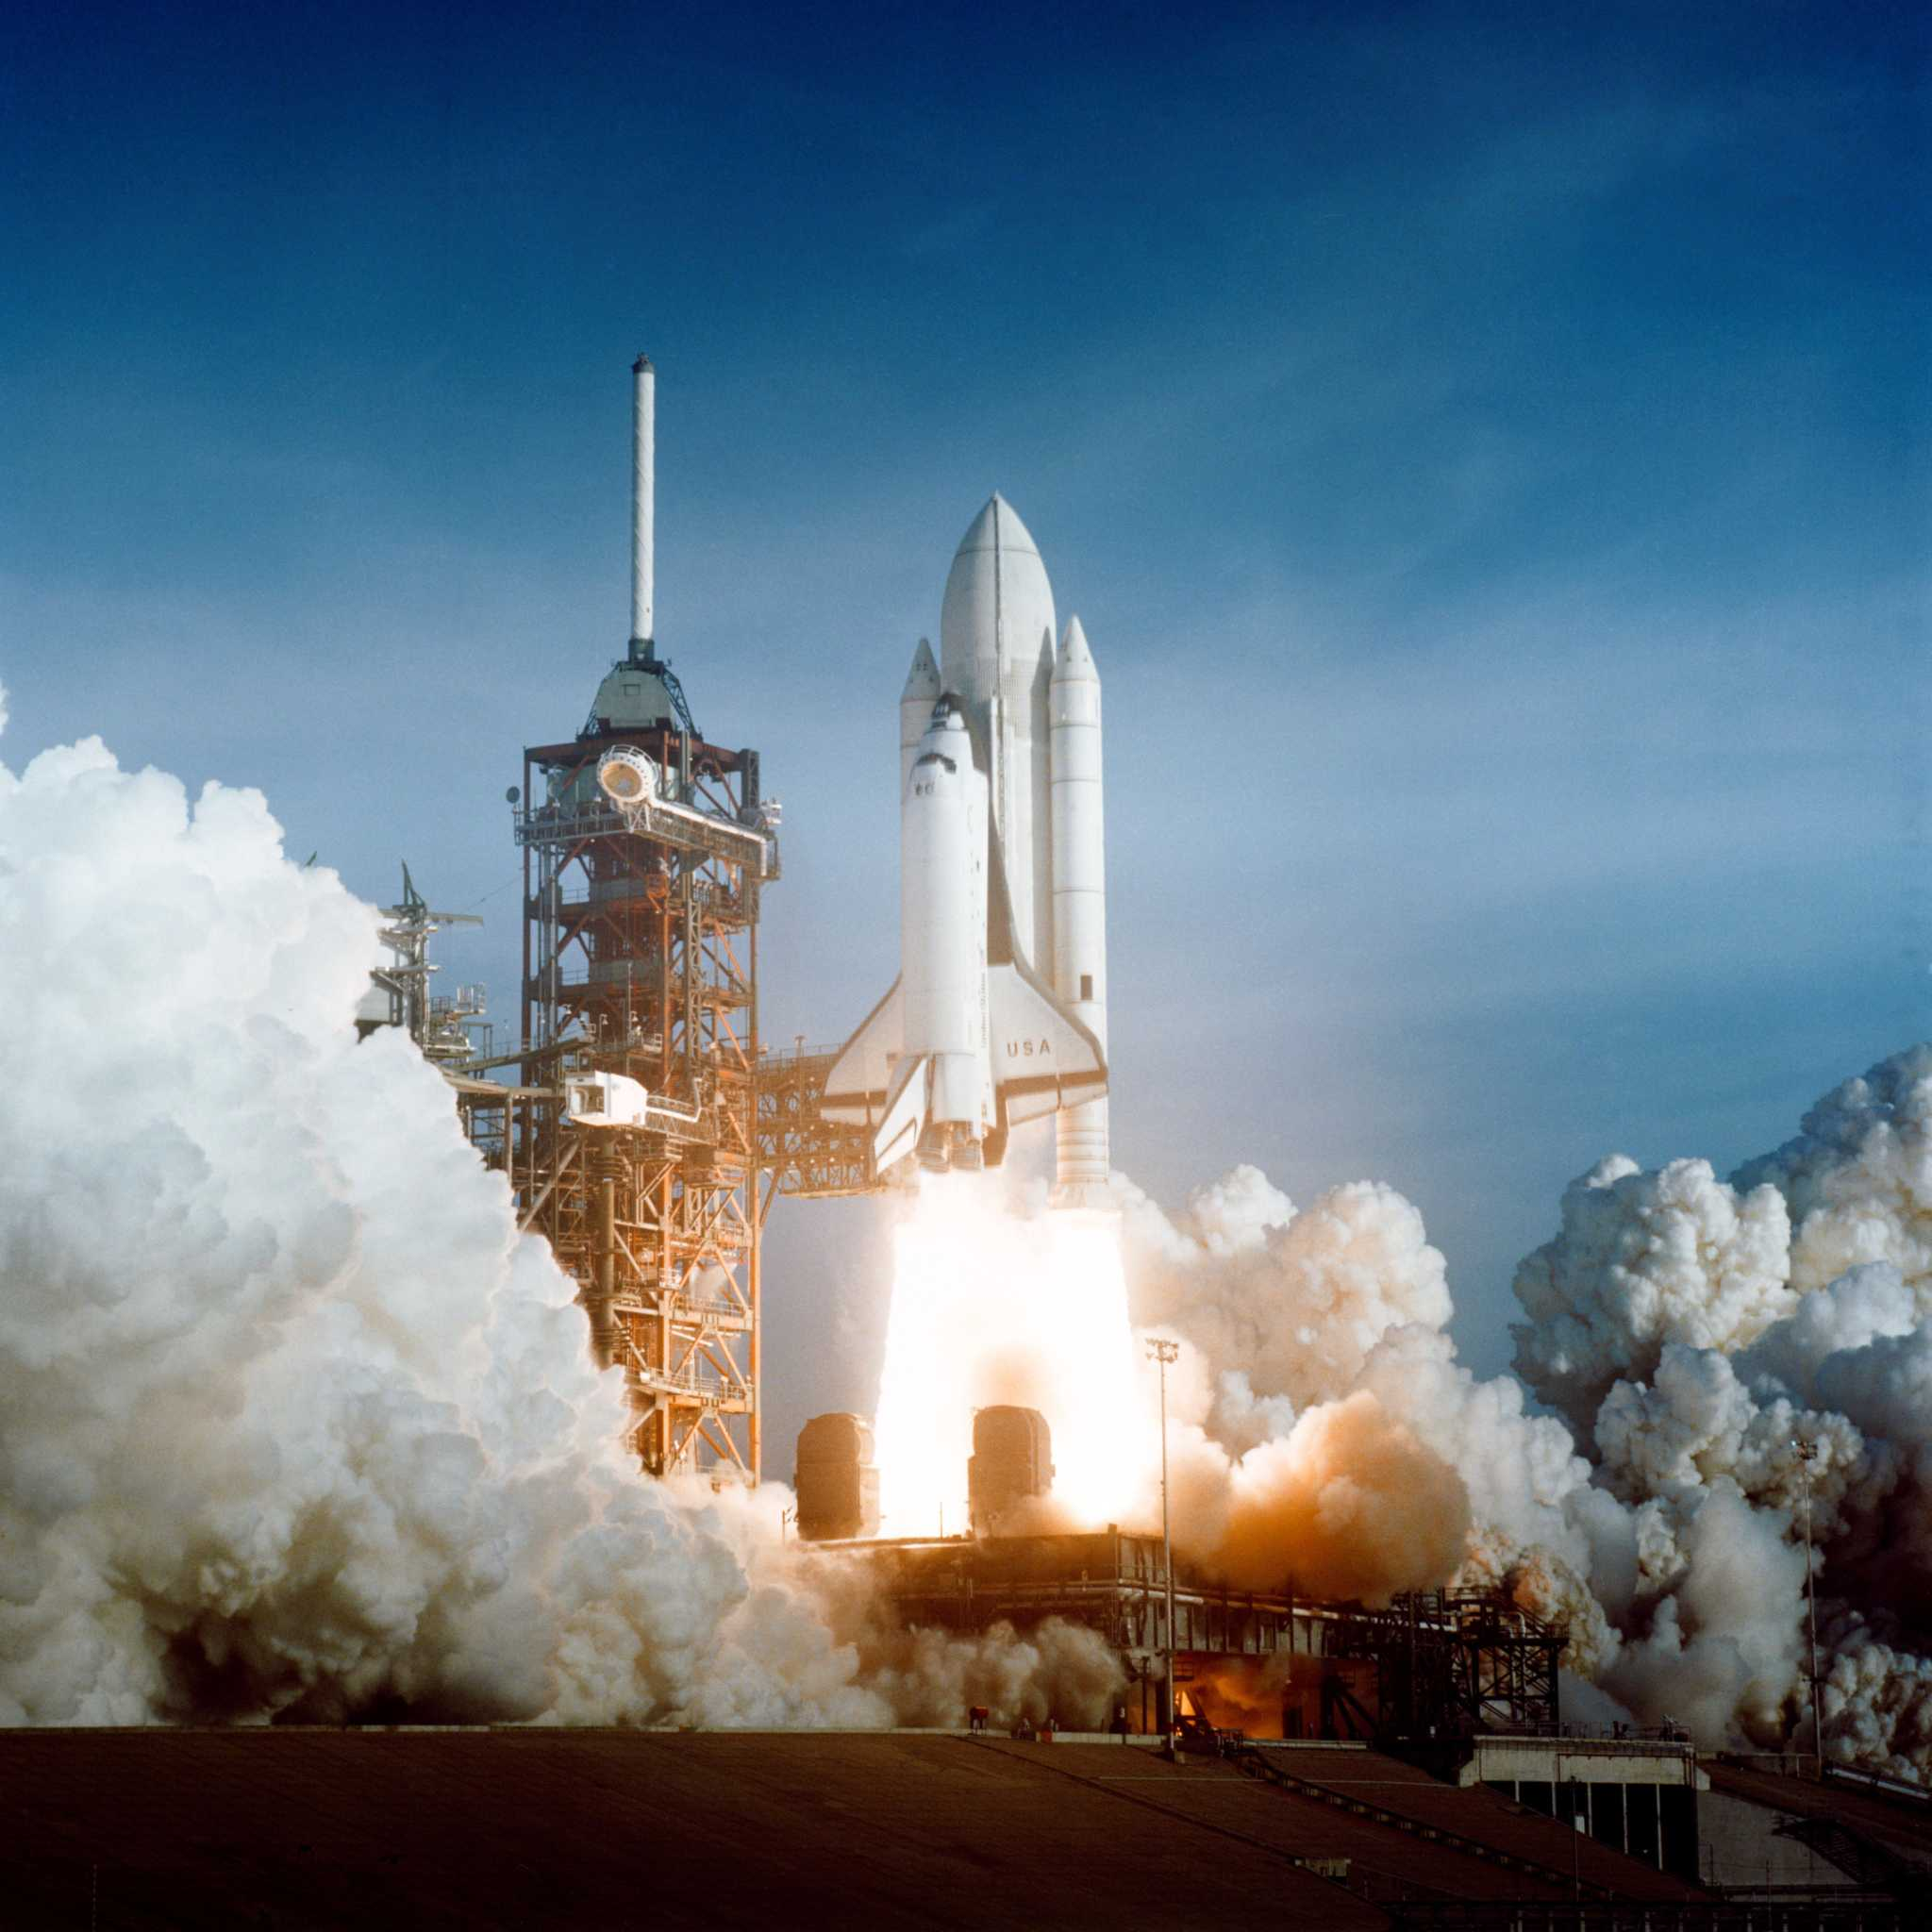 40 years after its pioneering launch, NASA's space shuttle leaves a 'mixed legacy.' Was it worth it?